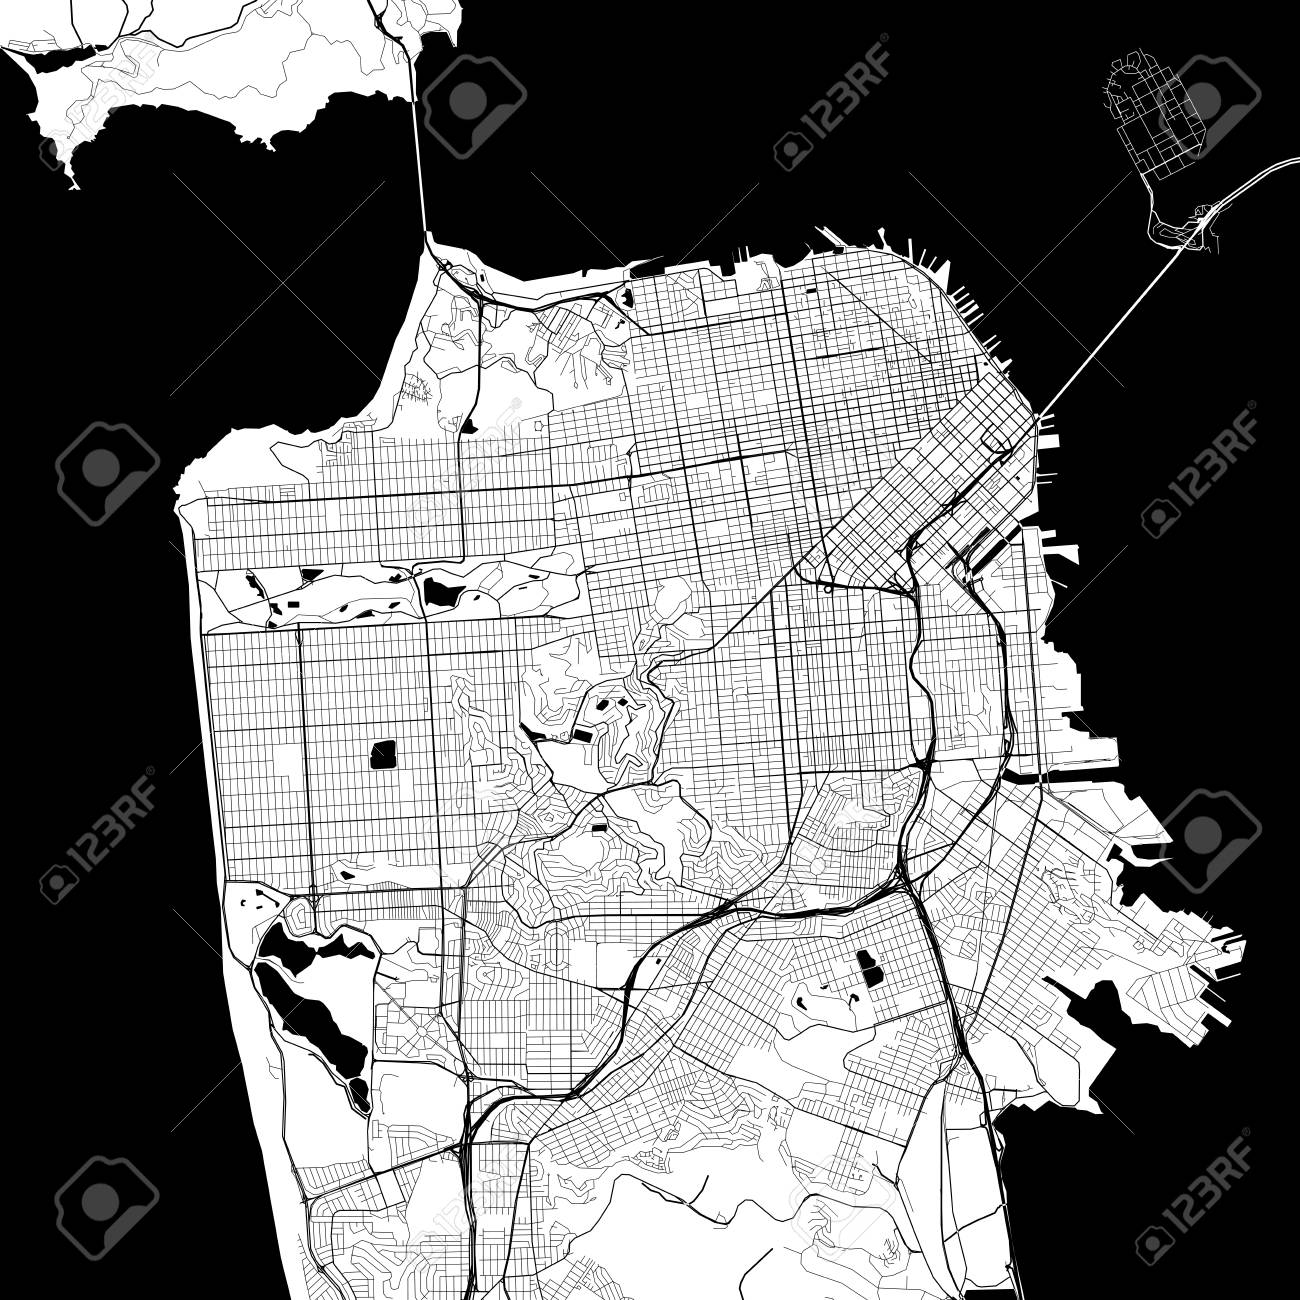 San Francisco Monochrome Vector Map. Very large and detailed outline Version on White Background. Black Highways and Railroads, Grey Streets, Blue Water. - 83803245